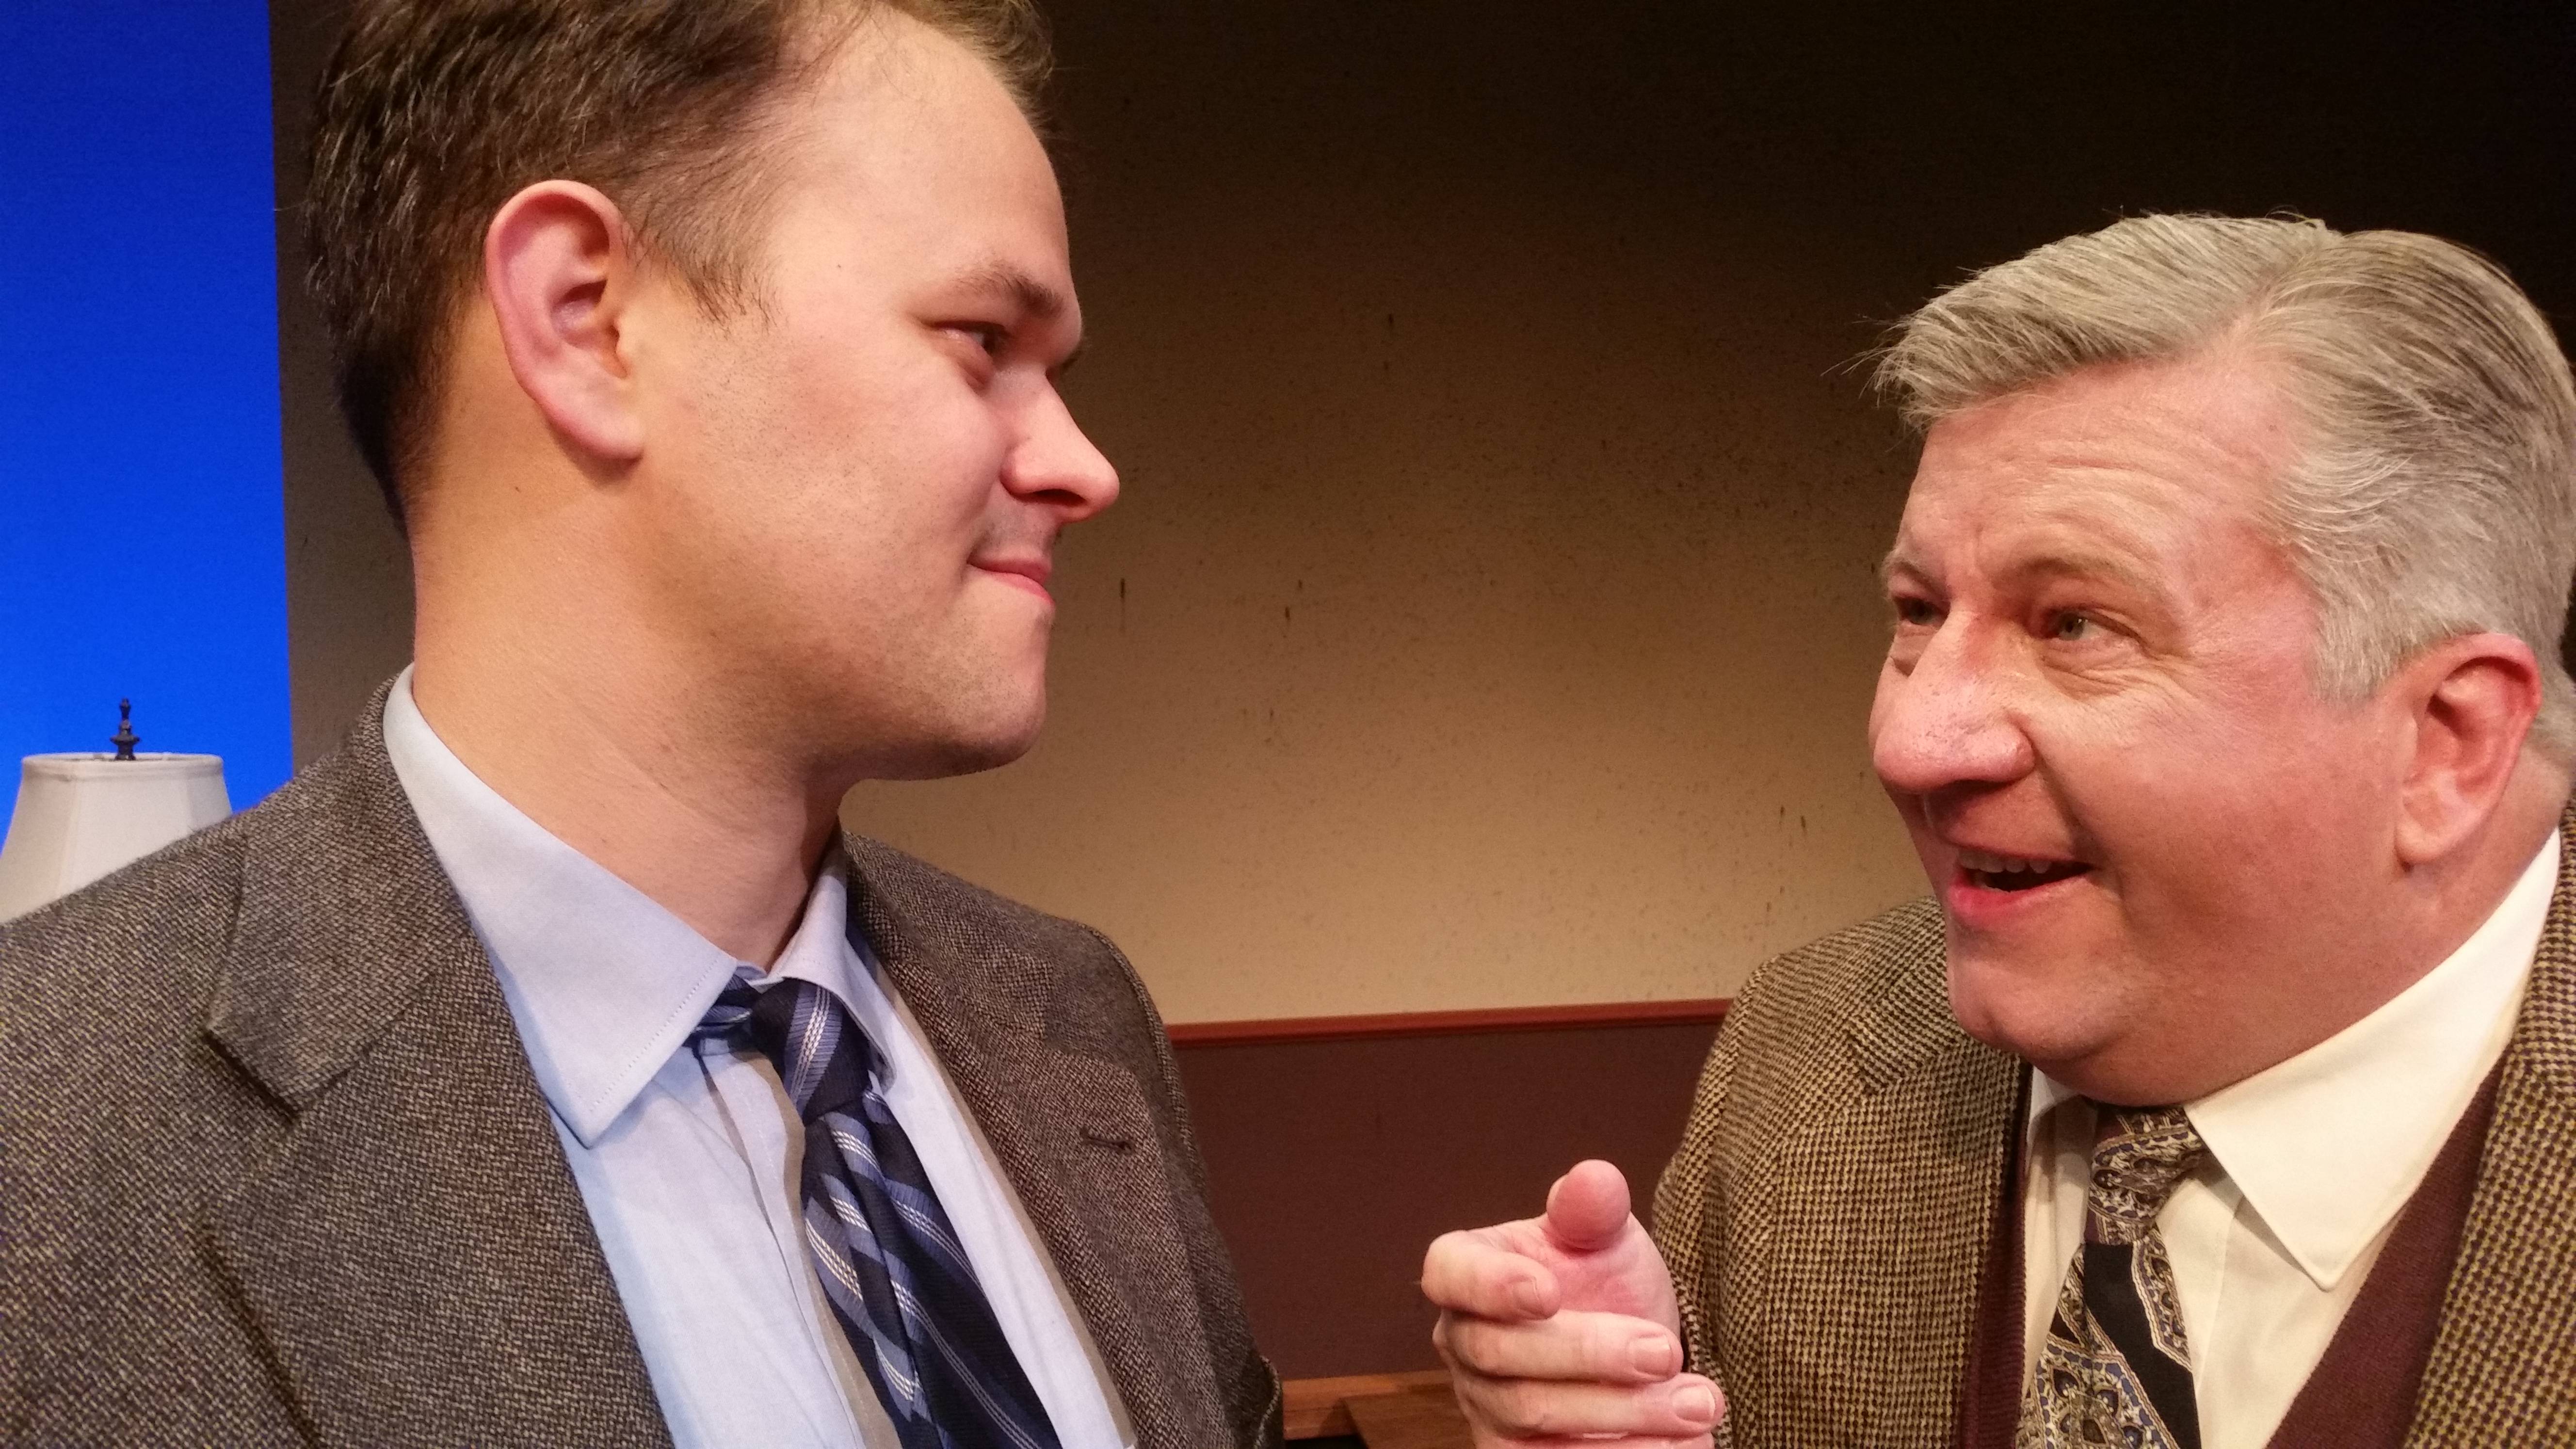 BWW Review: TUESDAYS WITH MORRIE at Bunbury Theatre